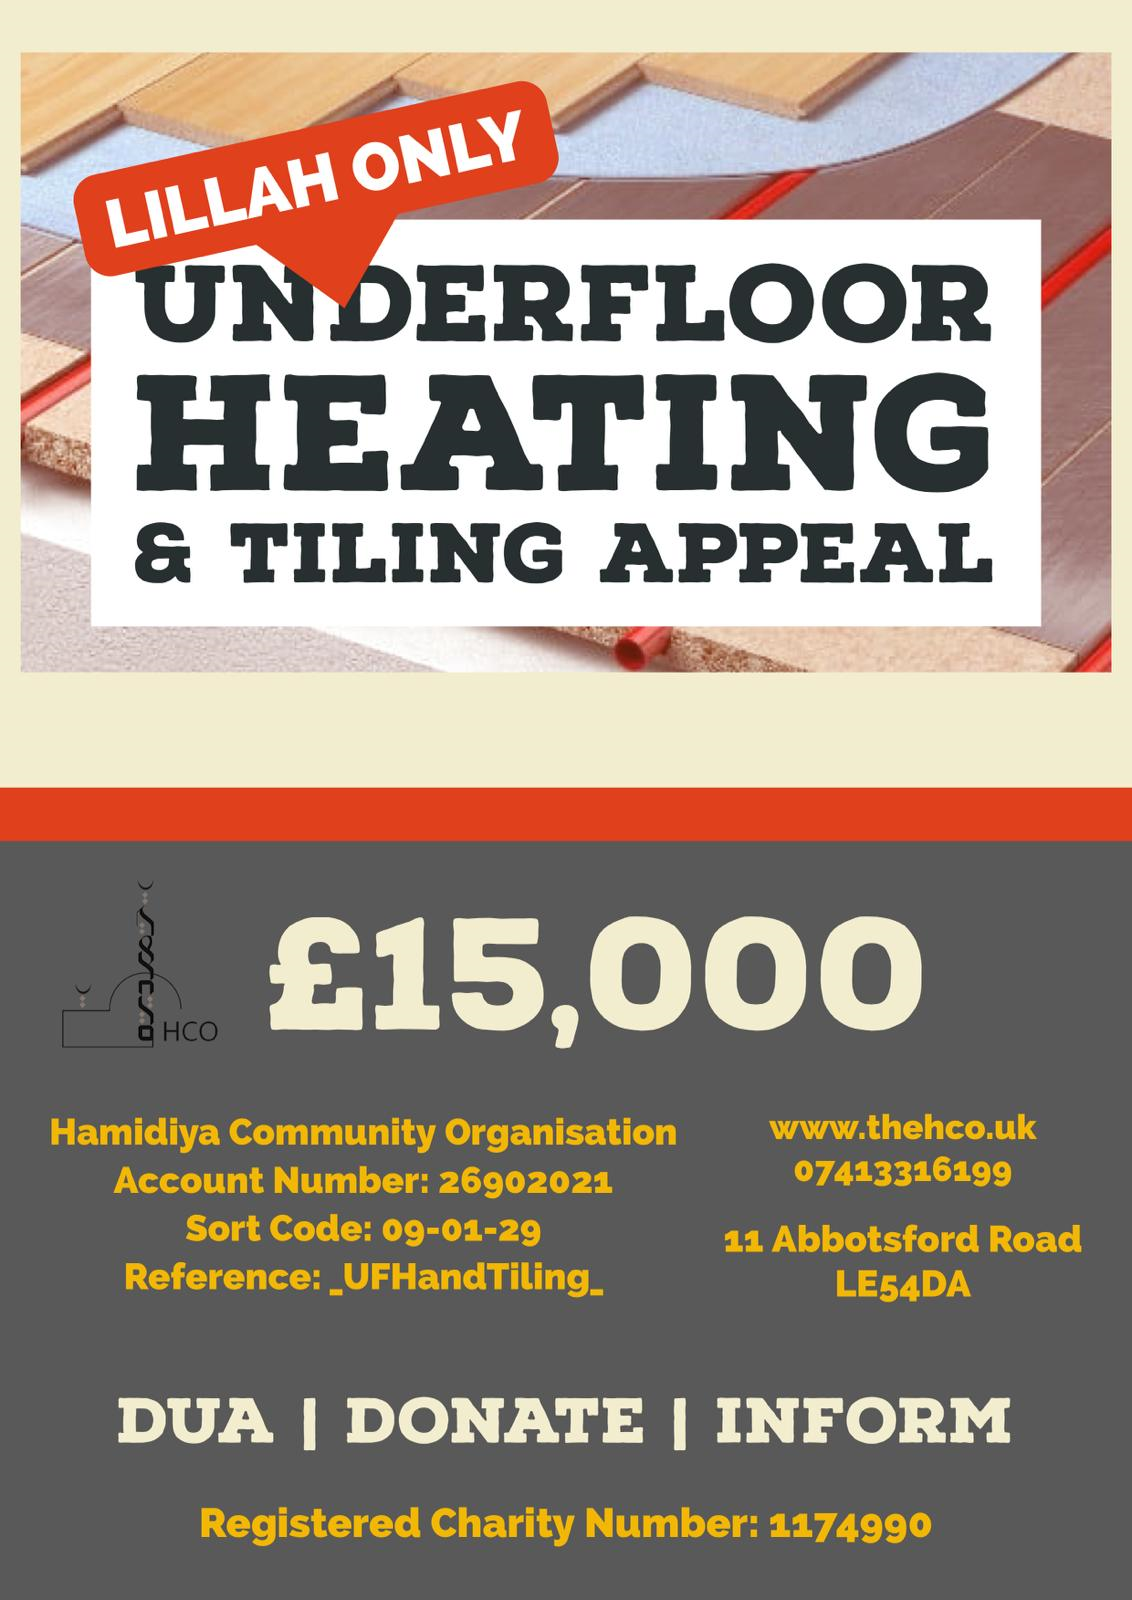 Underfloor Heating and Tiling Appeal